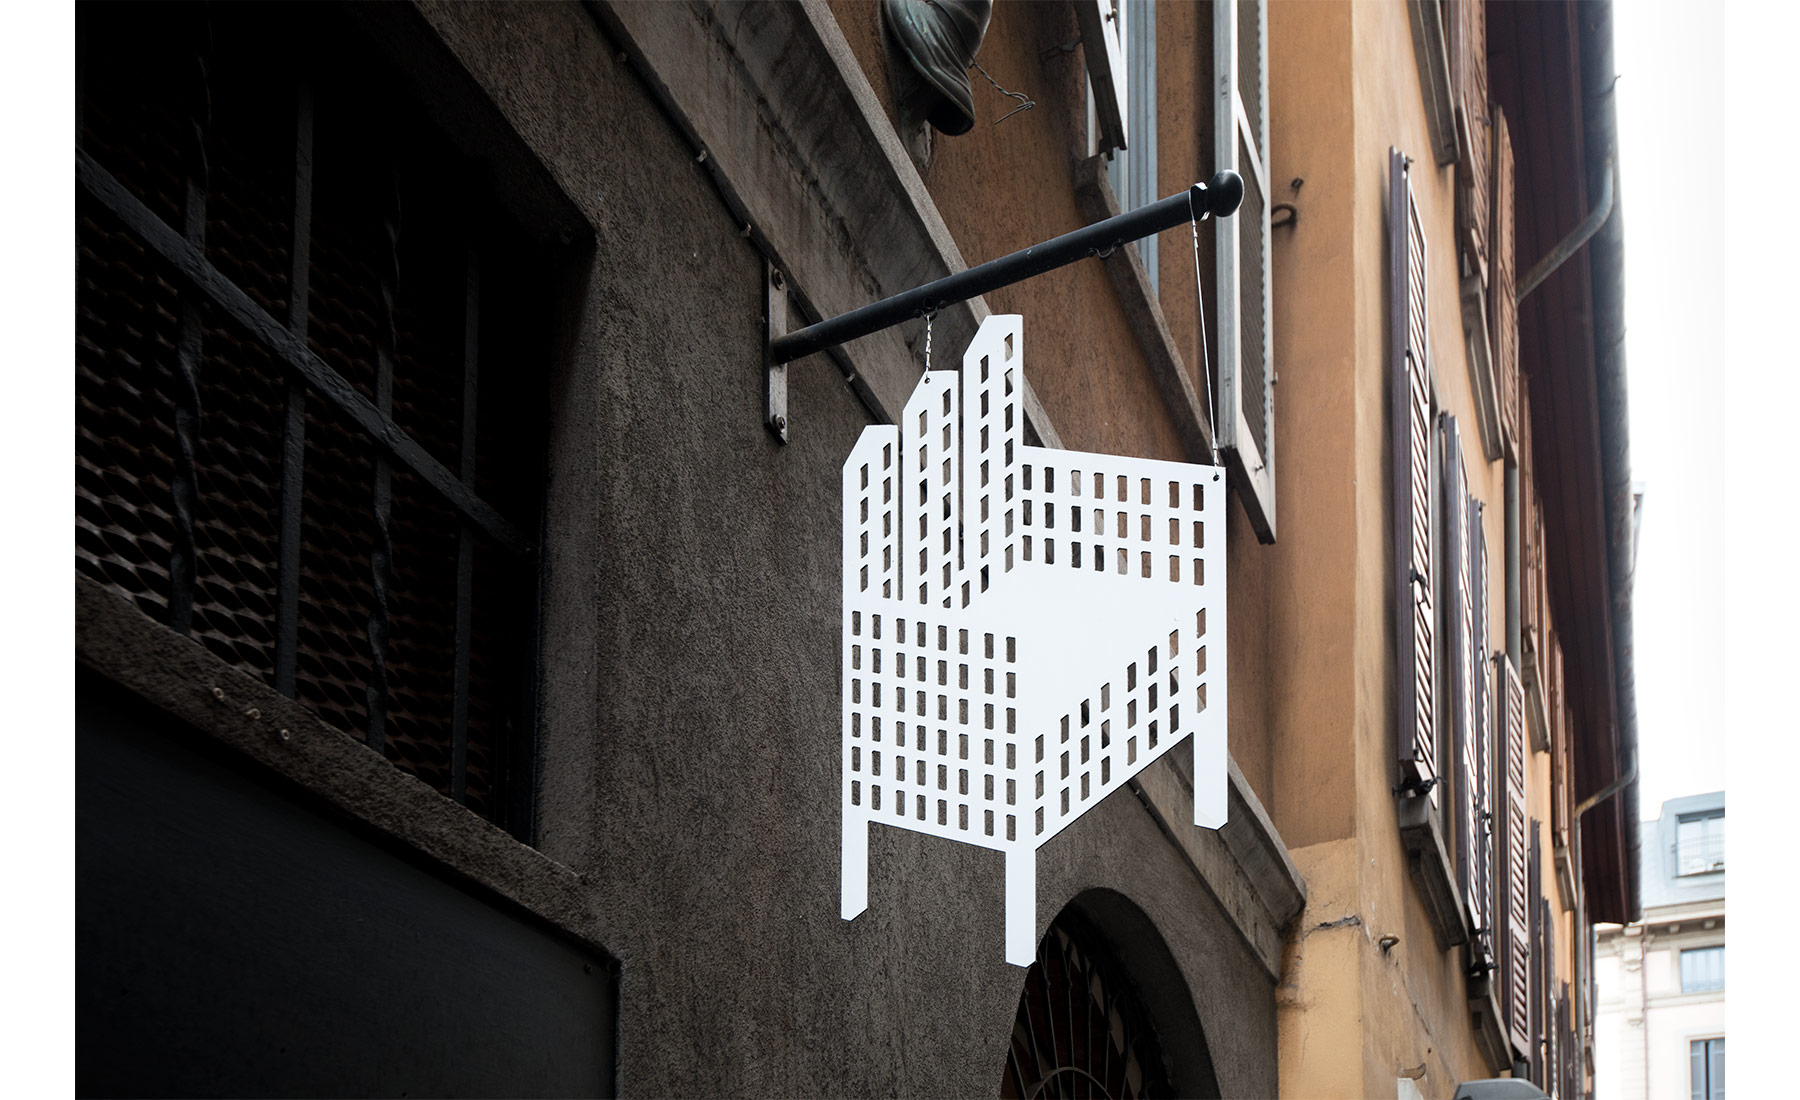 marco-tacchini-photographer-village-chairs-milano_04